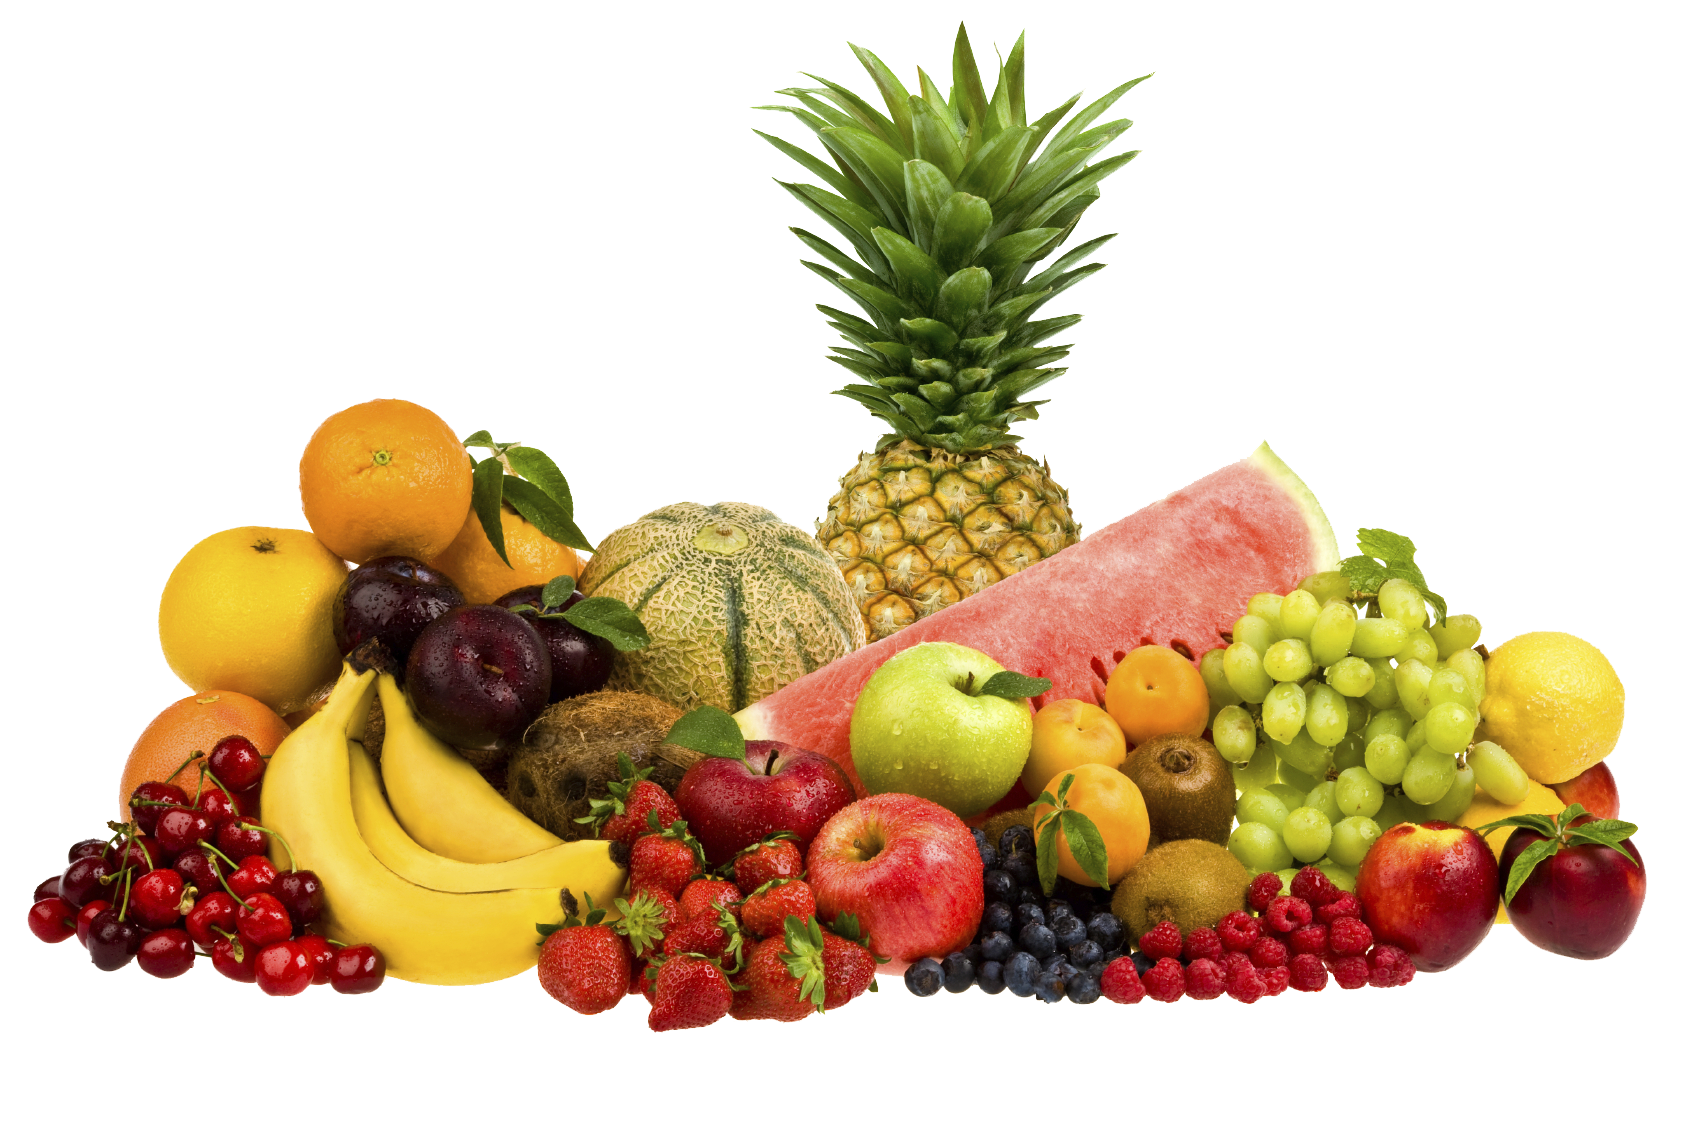 Fruits 21 Png - Download Fruit PNG Picture - Free Transparent PNG Images, Icons ...